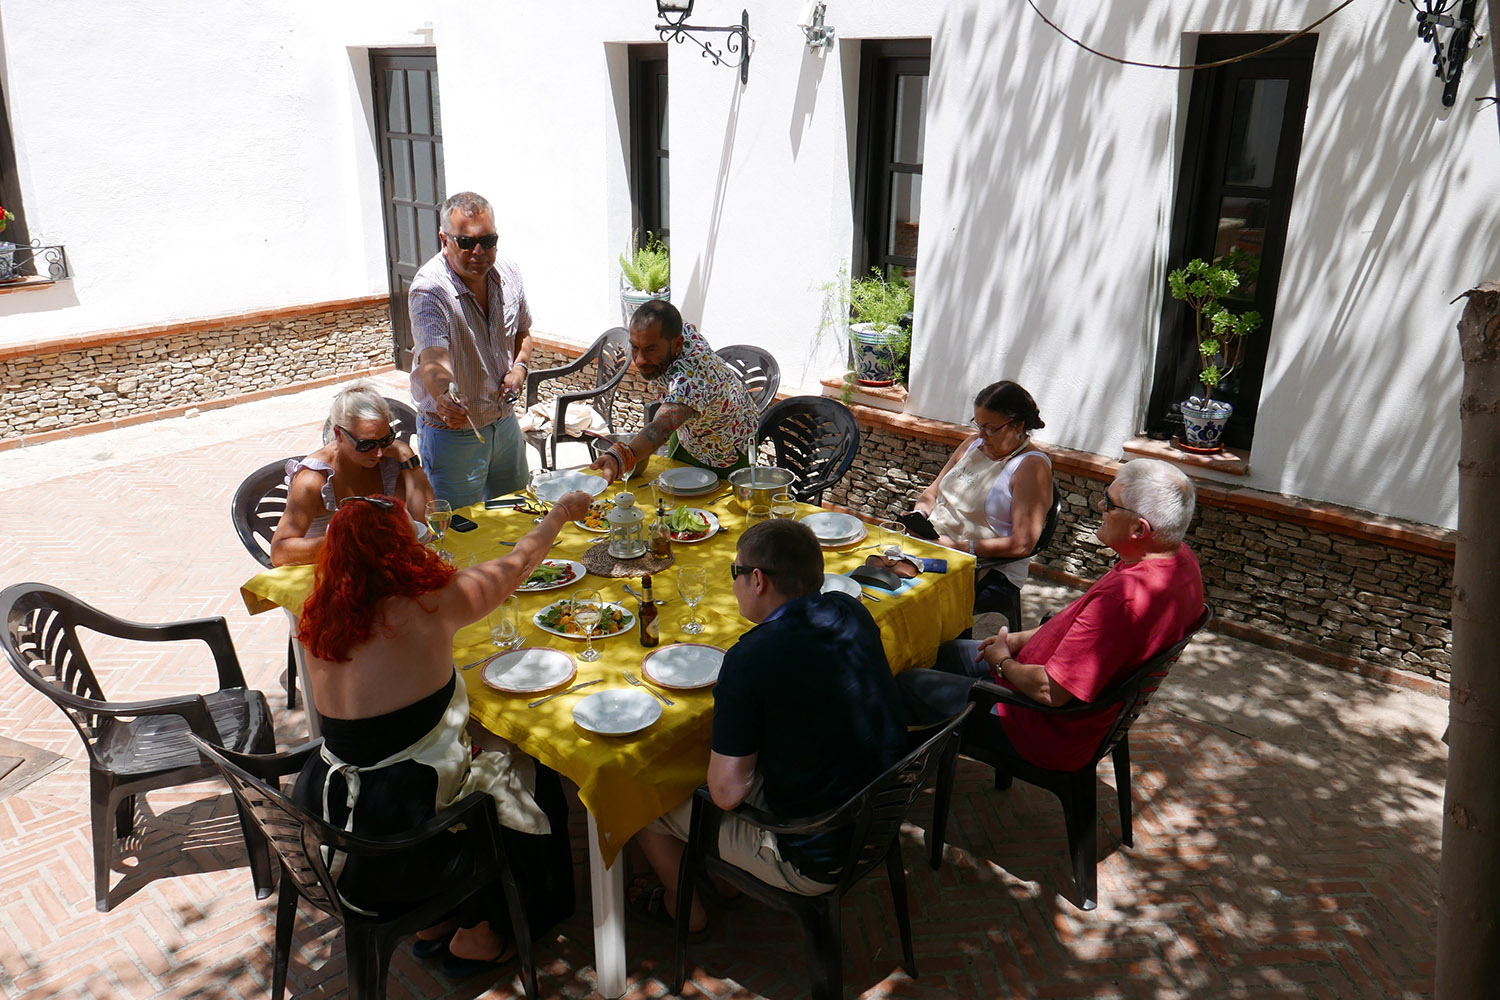 Lunch in the courtyard